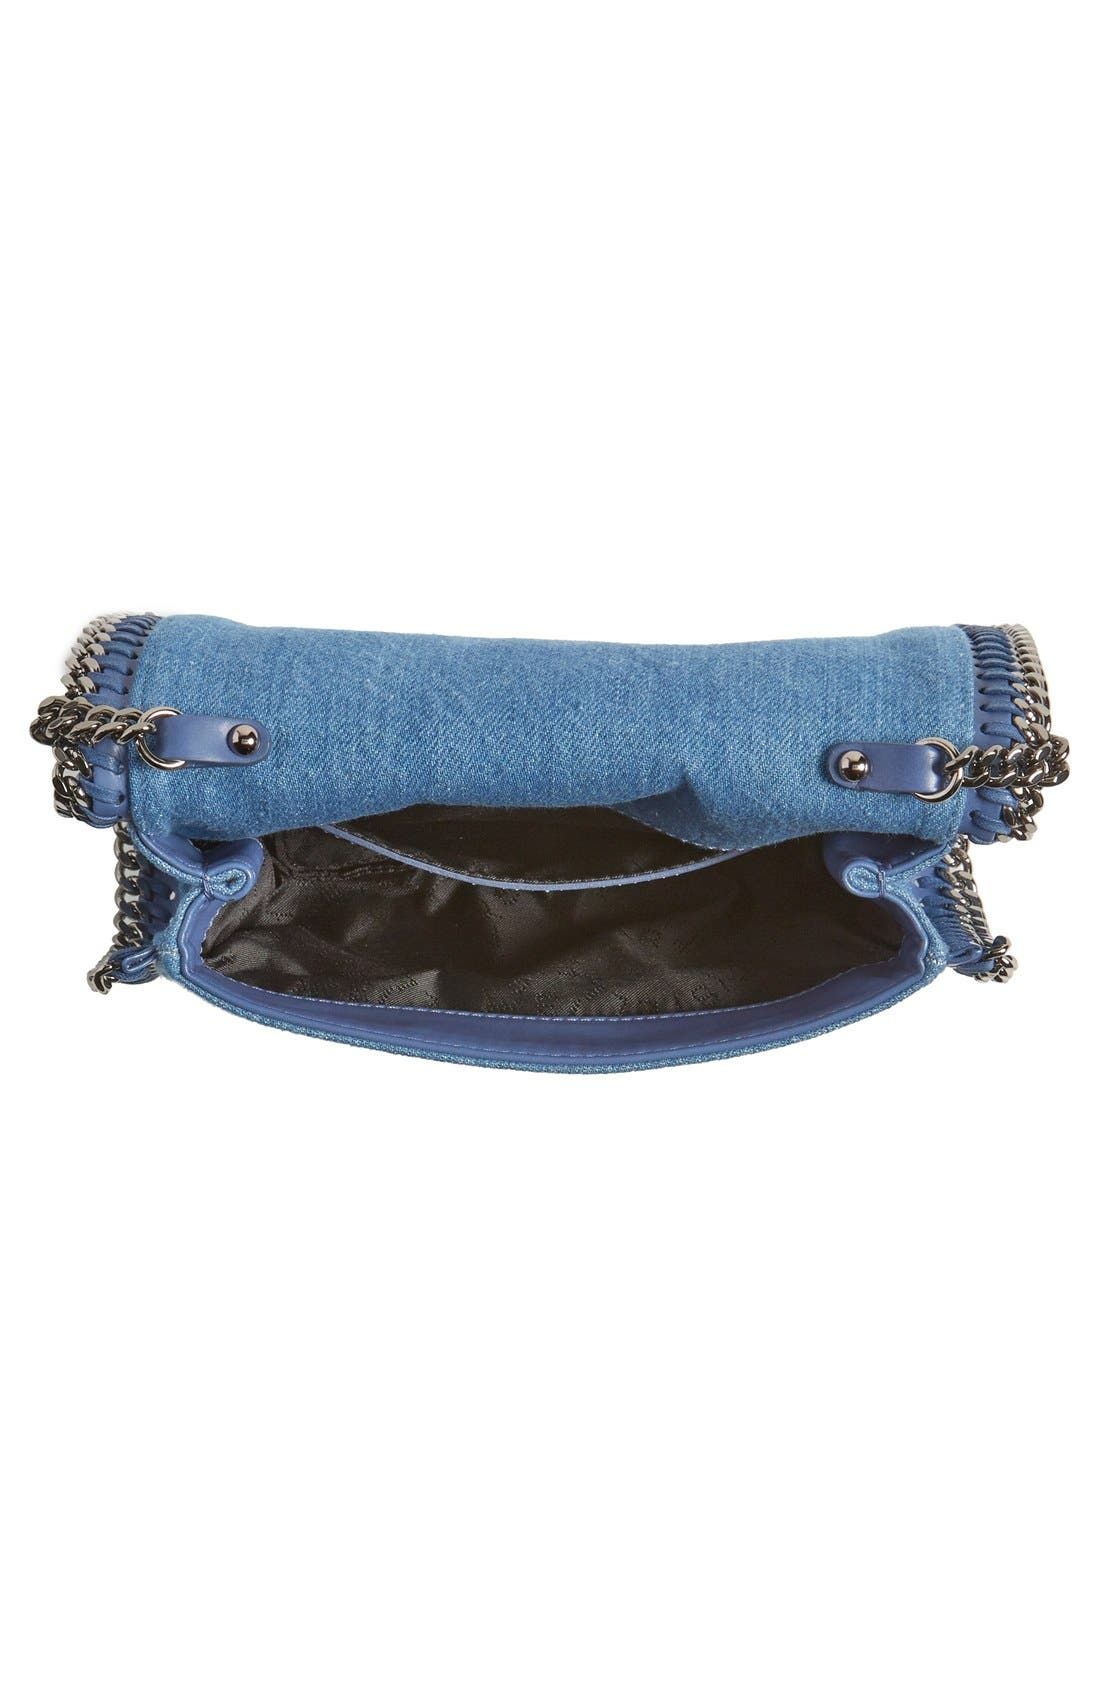 'Falabella - Adorned' Denim Crossbody Bag,                             Alternate thumbnail 4, color,                             Blue